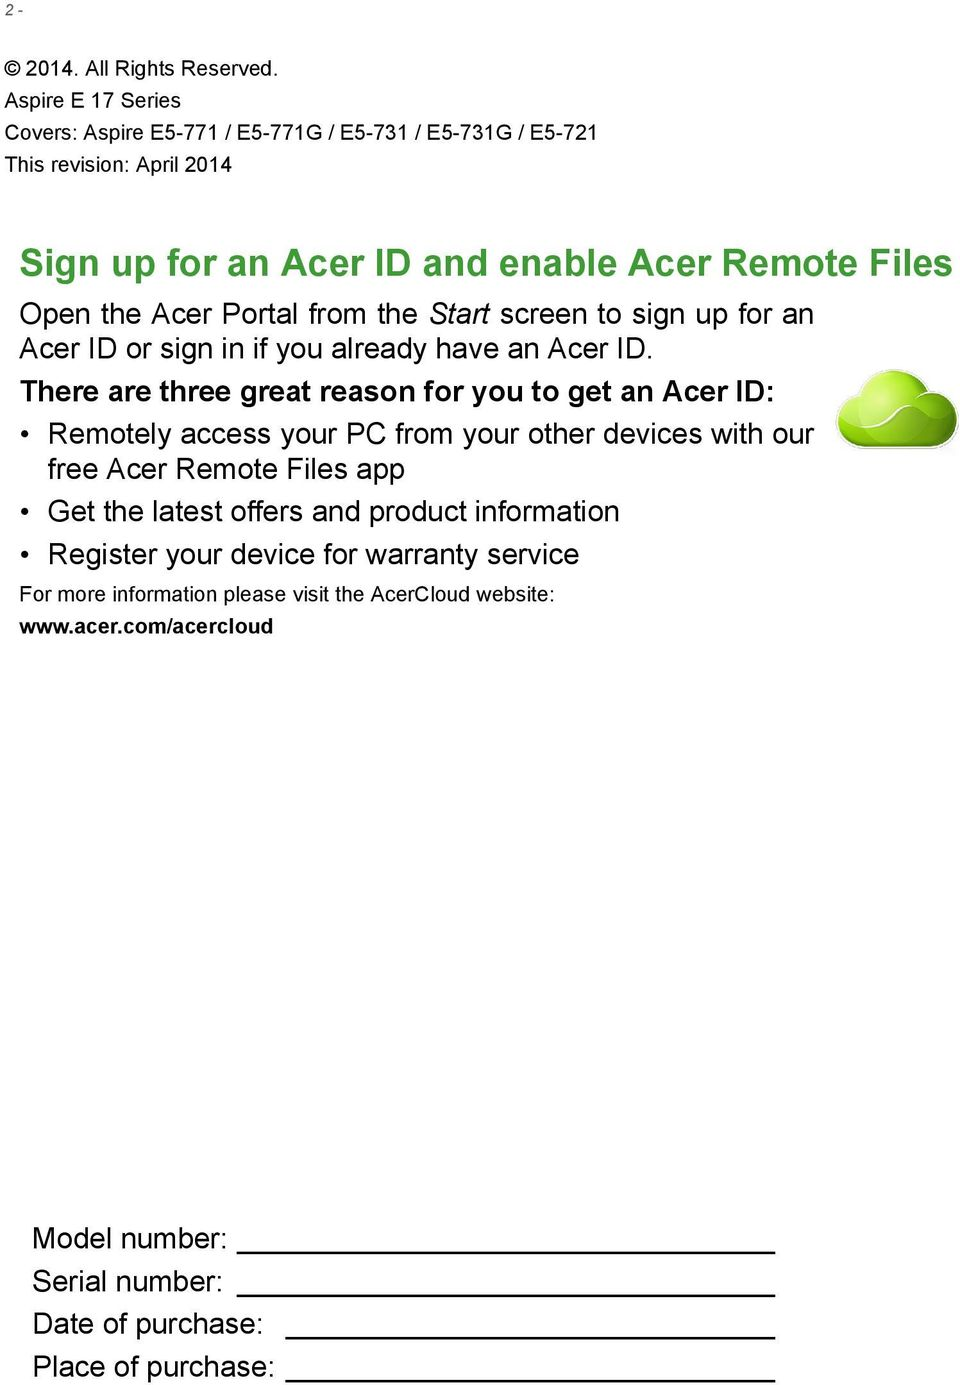 Sign Up For An Acer Id And Enable Remote Files Pdf Starter Portal From The Start Screen To Or In